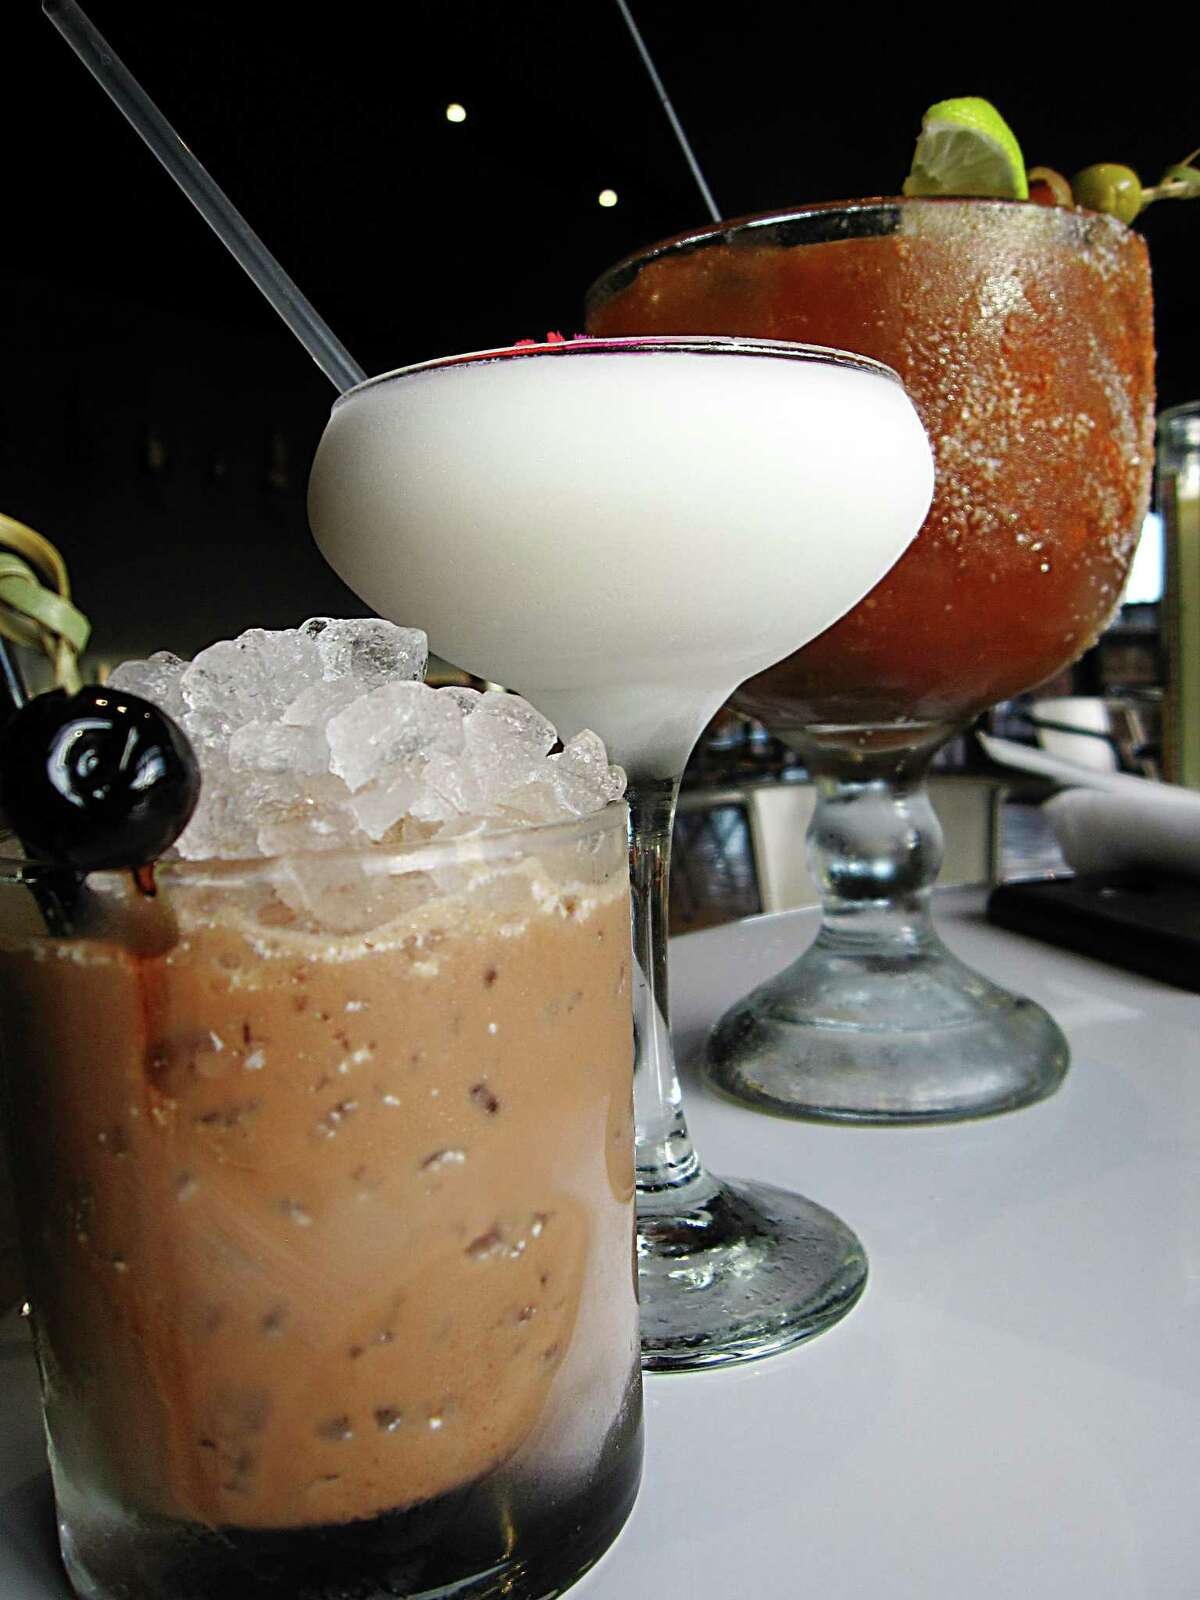 Cocktails from Chisme. From left: Chorreado with scotch and mole, Chismosa with cachaca and coconut and a 32-ounce michelada.